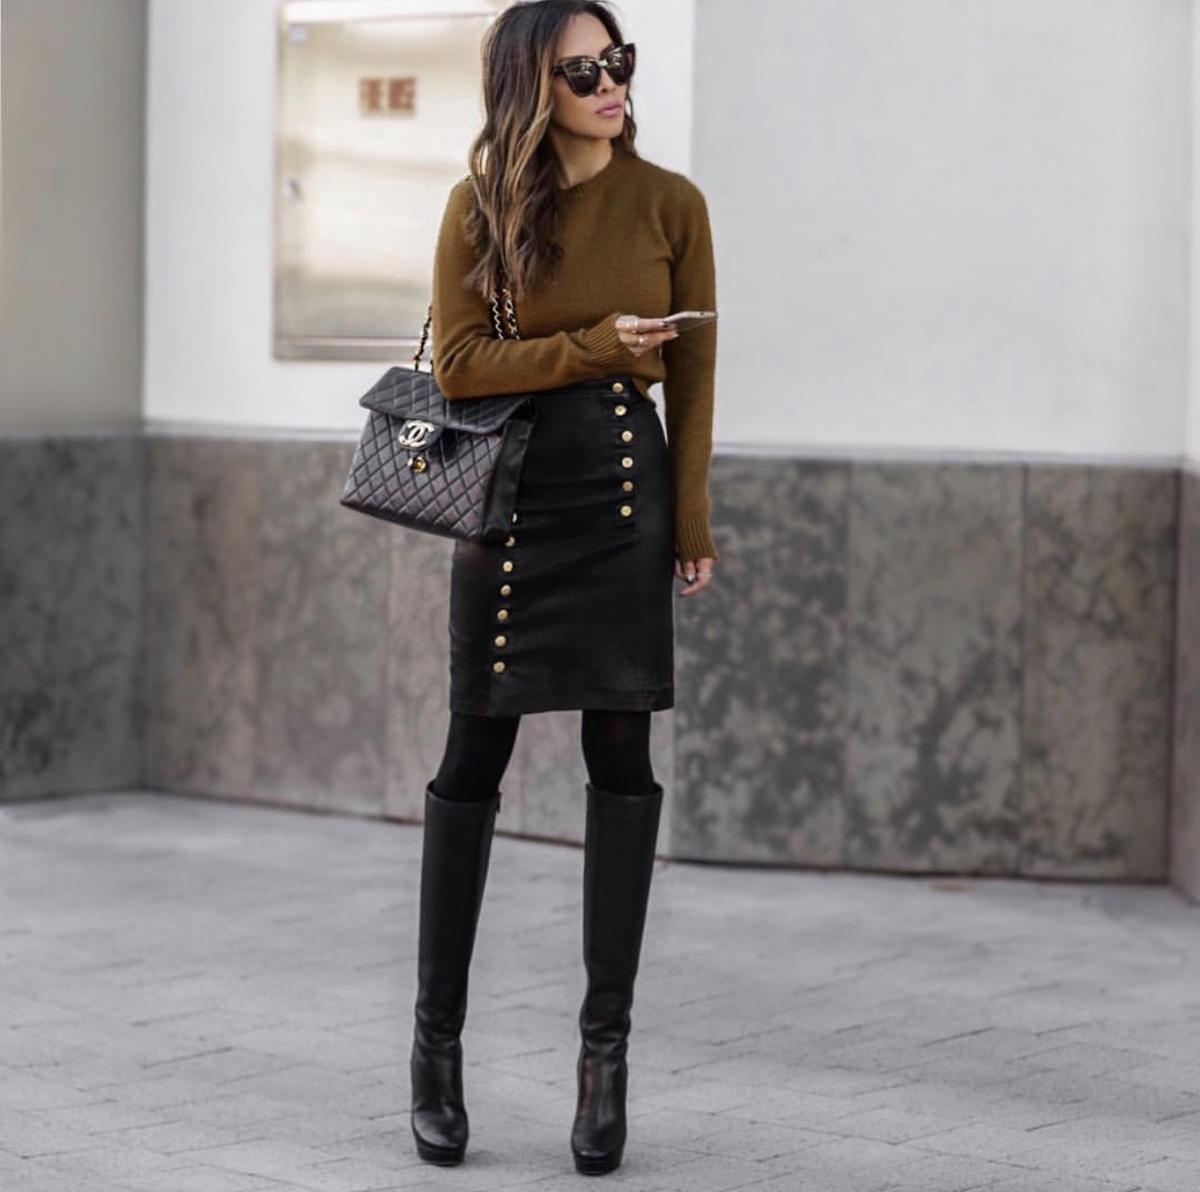 fashion blogger lolario style dresses up in stylish thanksgiving outfits featuring a leather skirt tall leather boots and brown sweater | lolariostyle.com